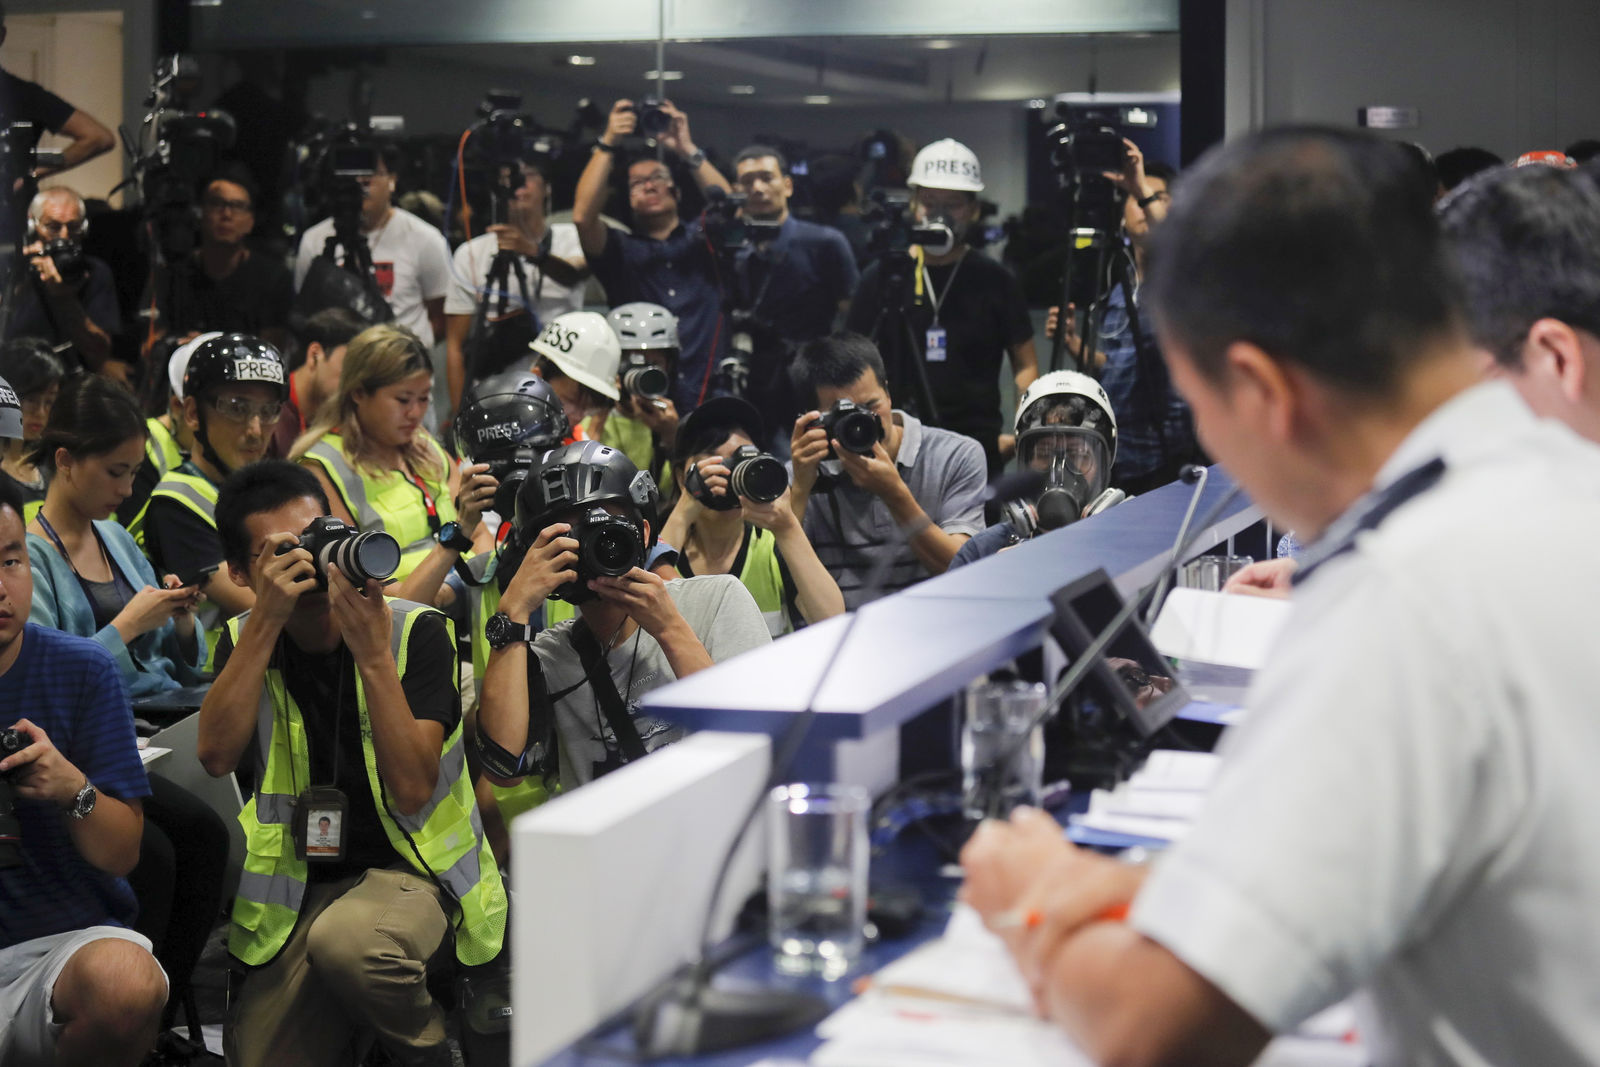 In a sign of protest against the police using force against the media, press photographers wear protective gear during a police media conference in Hong Kong, on Monday, Sept. 9, 2019.. (AP Photo/Kin Cheung)